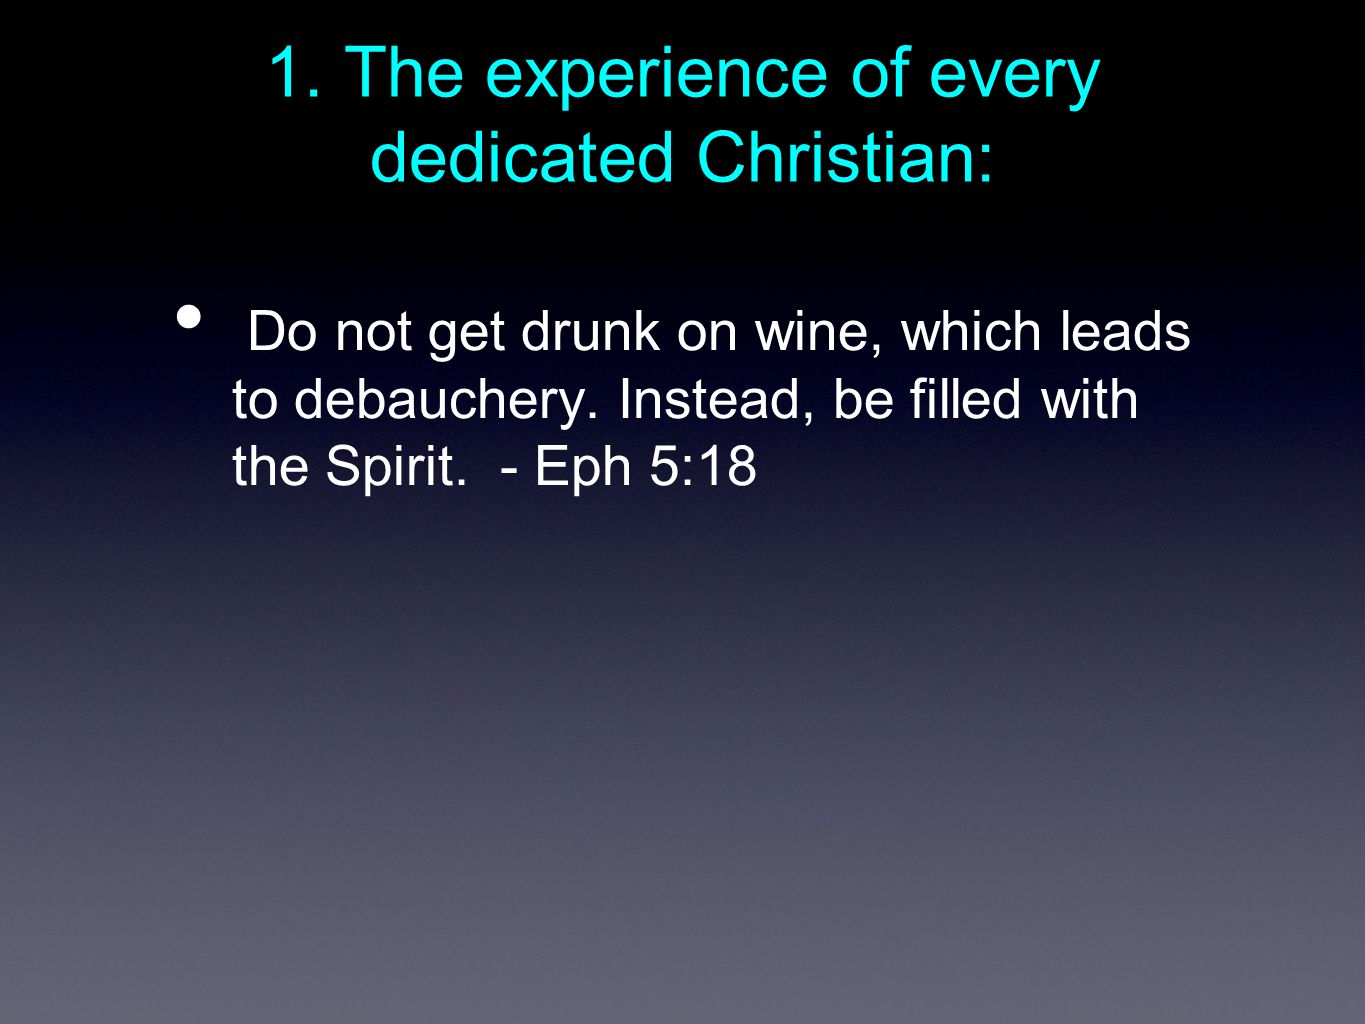 1. The experience of every dedicated Christian: